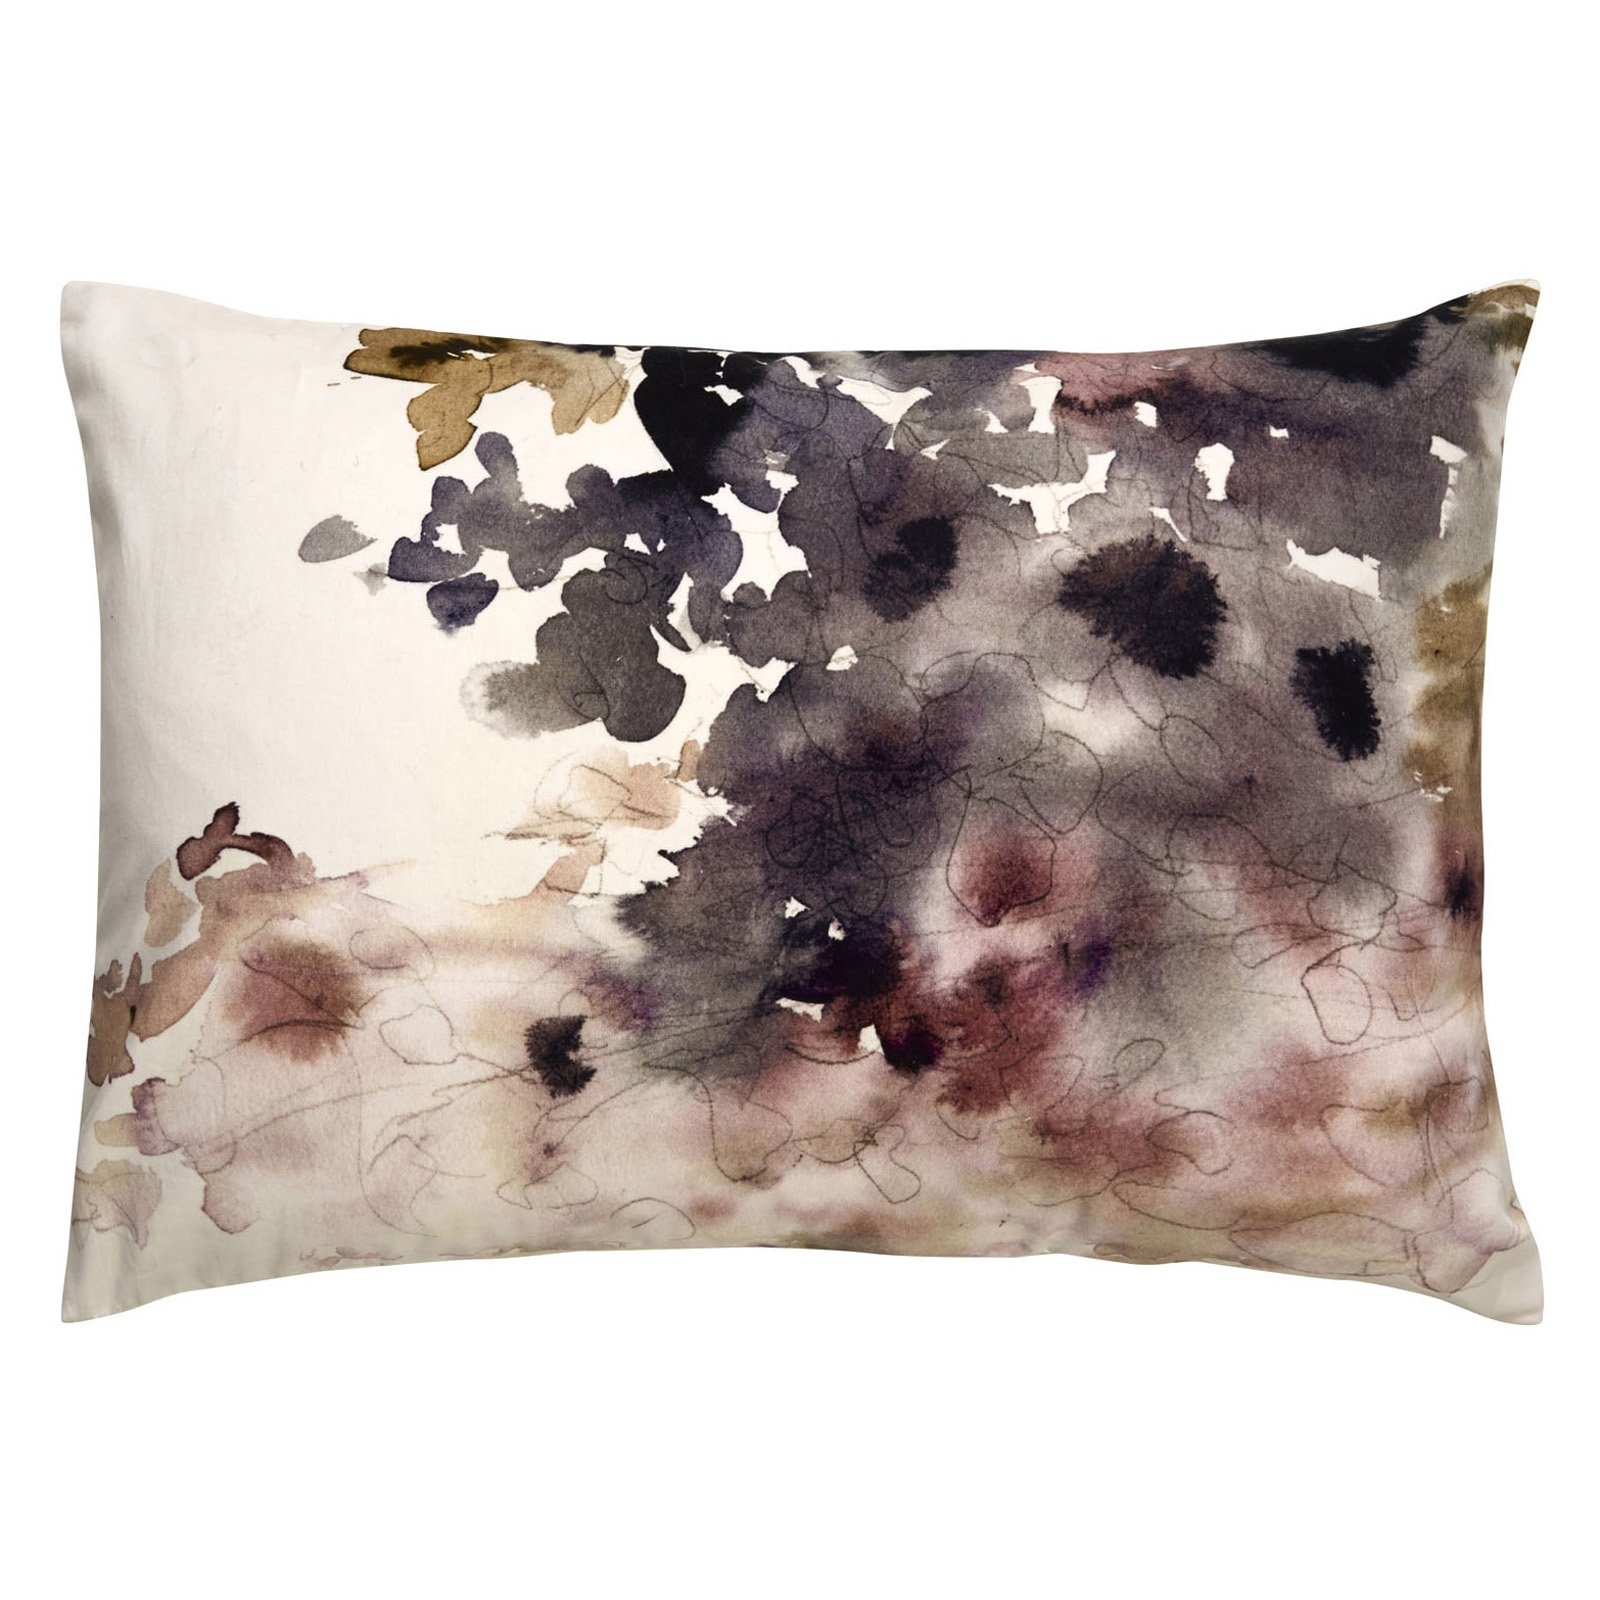 Jaipur Watercolor Cotton and Polyester Decorative Pillow - Ivory / Taupe